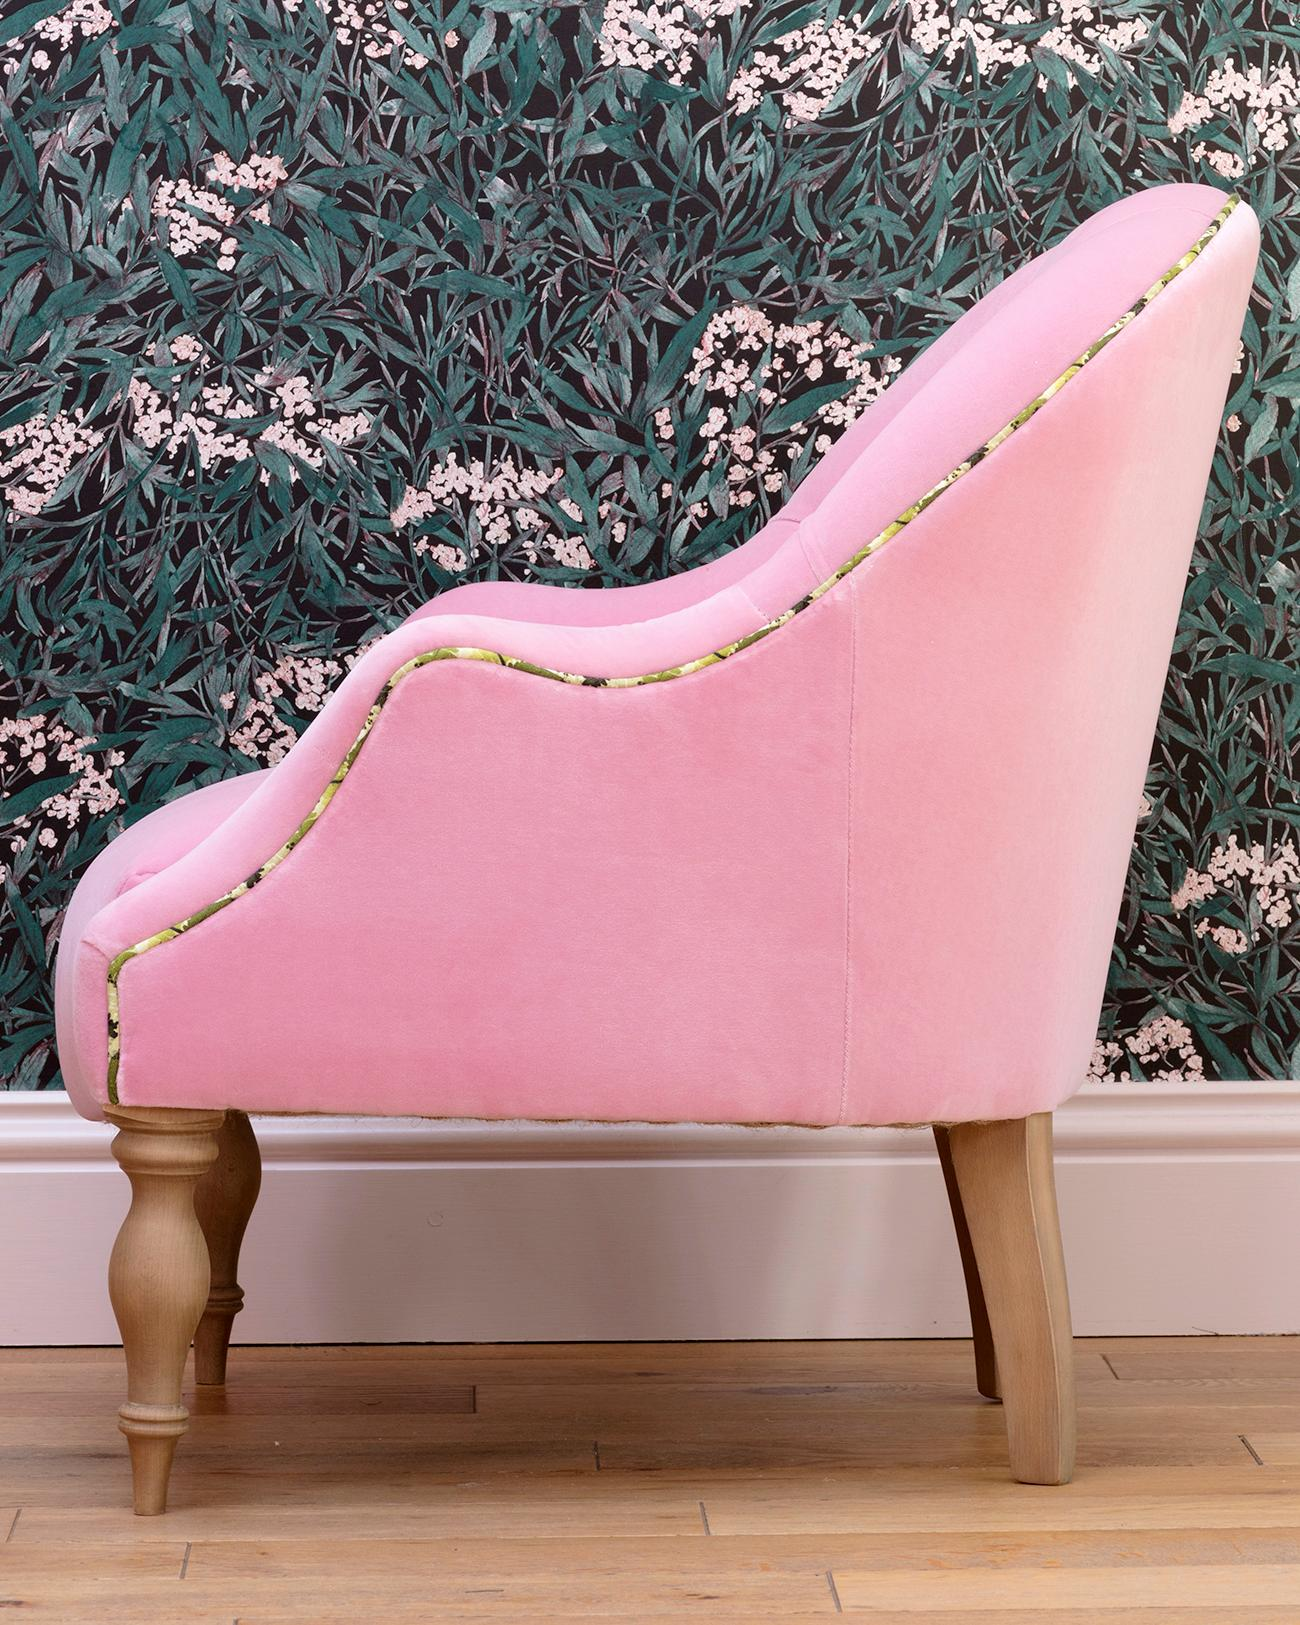 sofasandstuff reviews zuo sofa leg the best comfy chairs home sunday times sofas stuff s collaboration with pink house showcases emilie georgia fern fabric piping and a velvet from designers guild 999